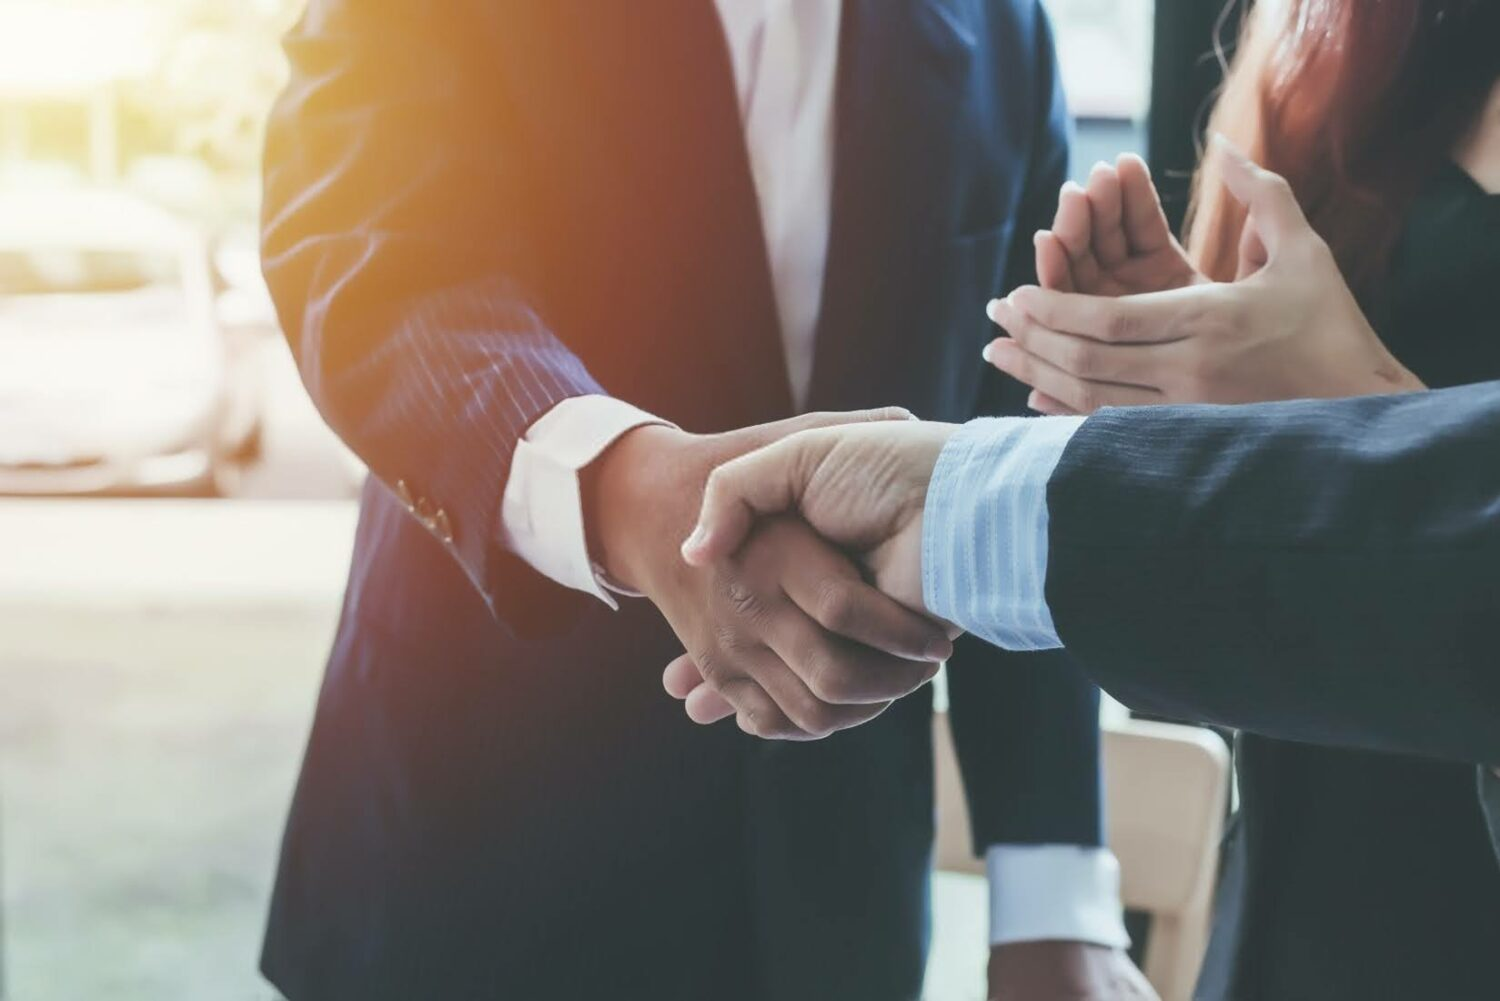 businesspeople wearing suits and shaking hands